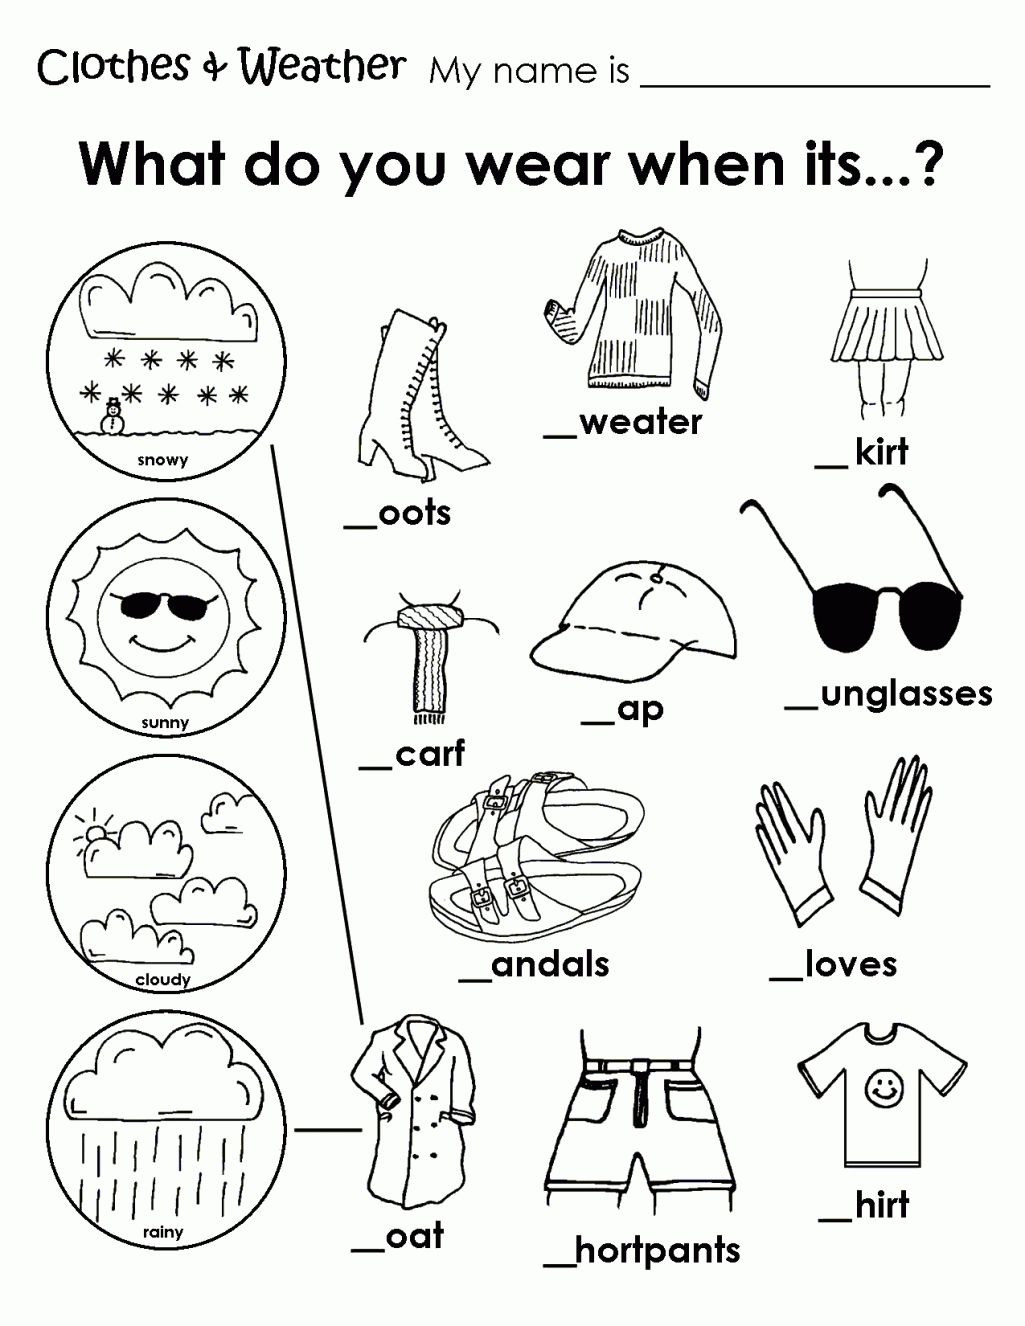 1st Grade Weather Worksheets Printable Weather Clothes Worksheet